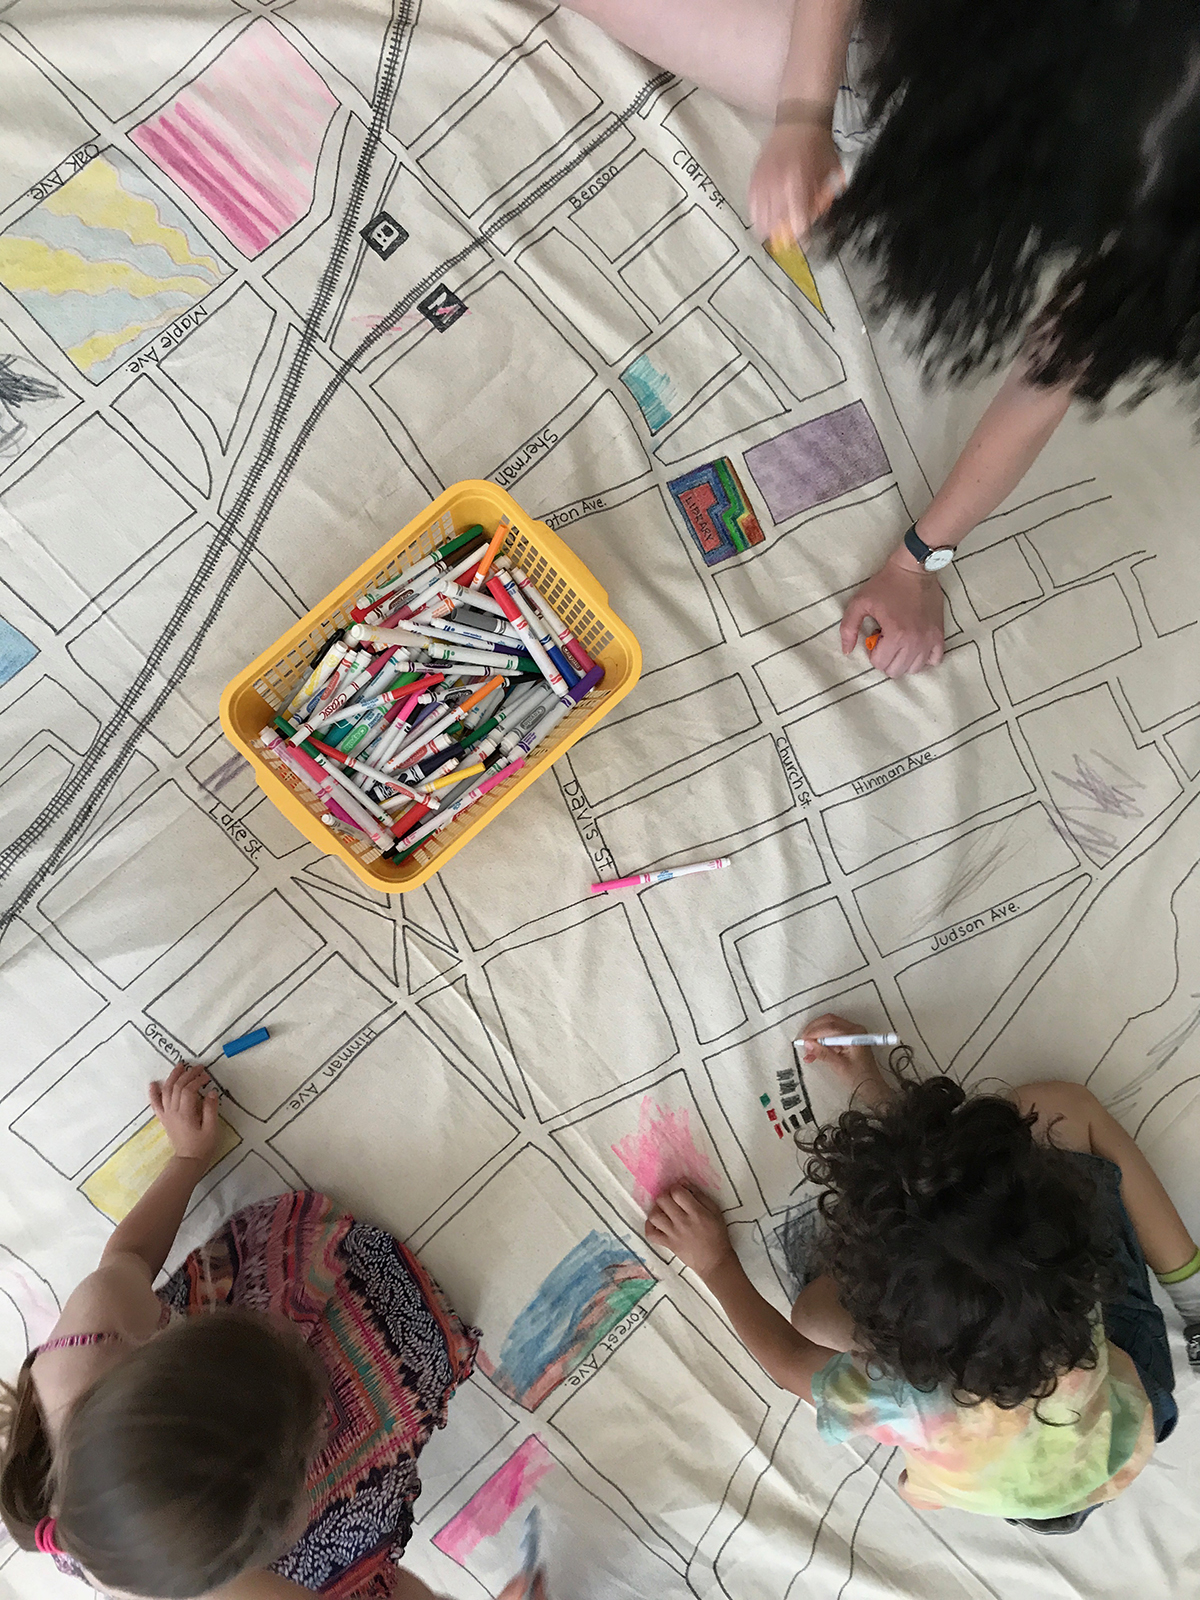 evanston map making with children for archKIDecture